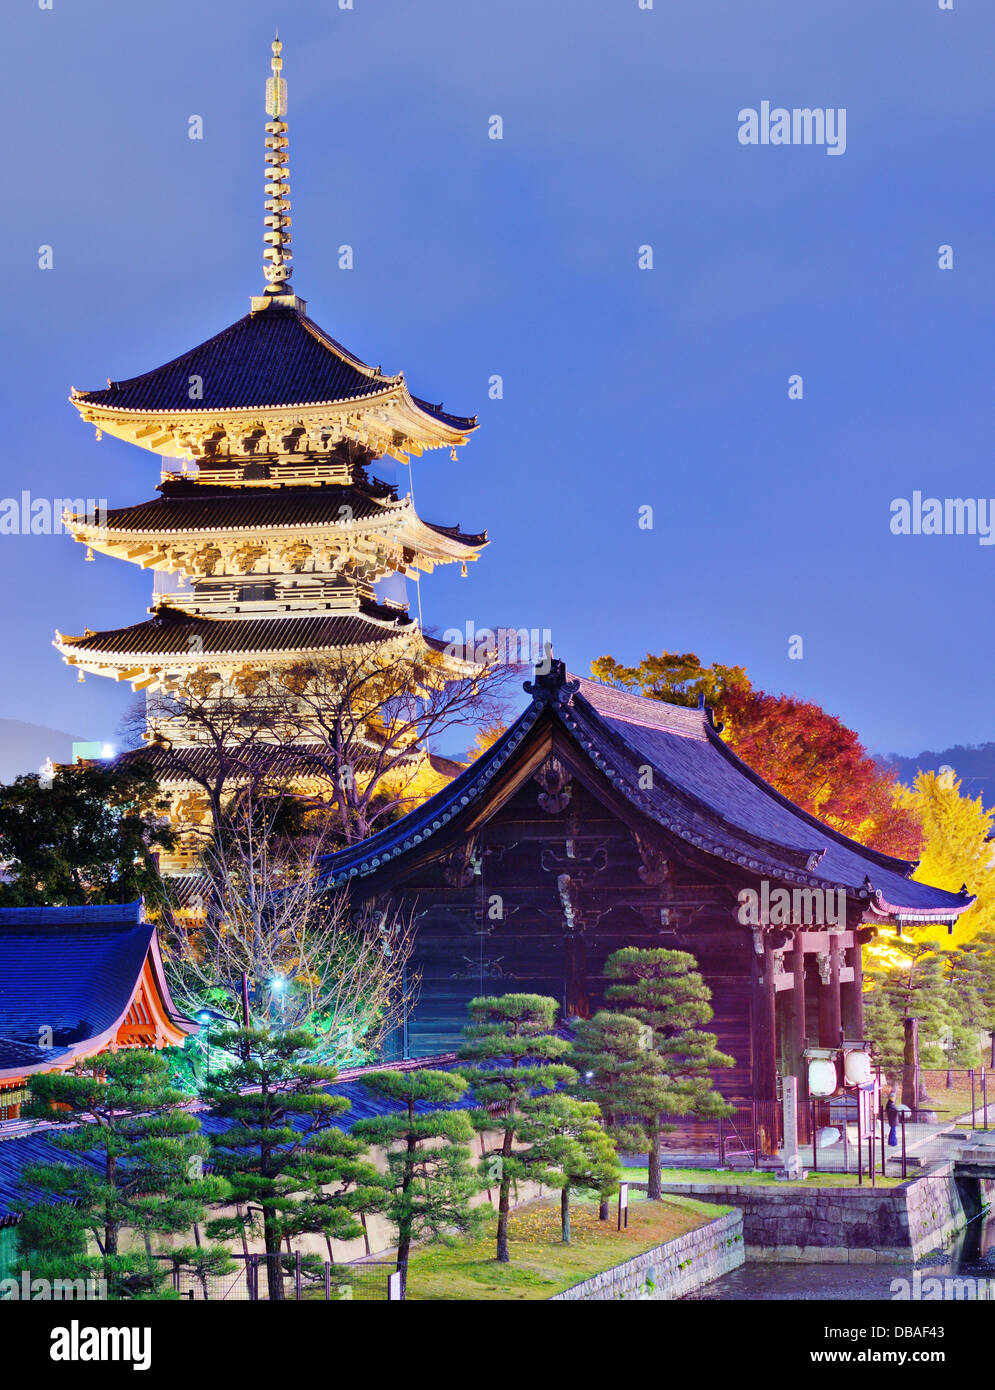 Toji Pagoda in Kotyo, Japan. - Stock Image